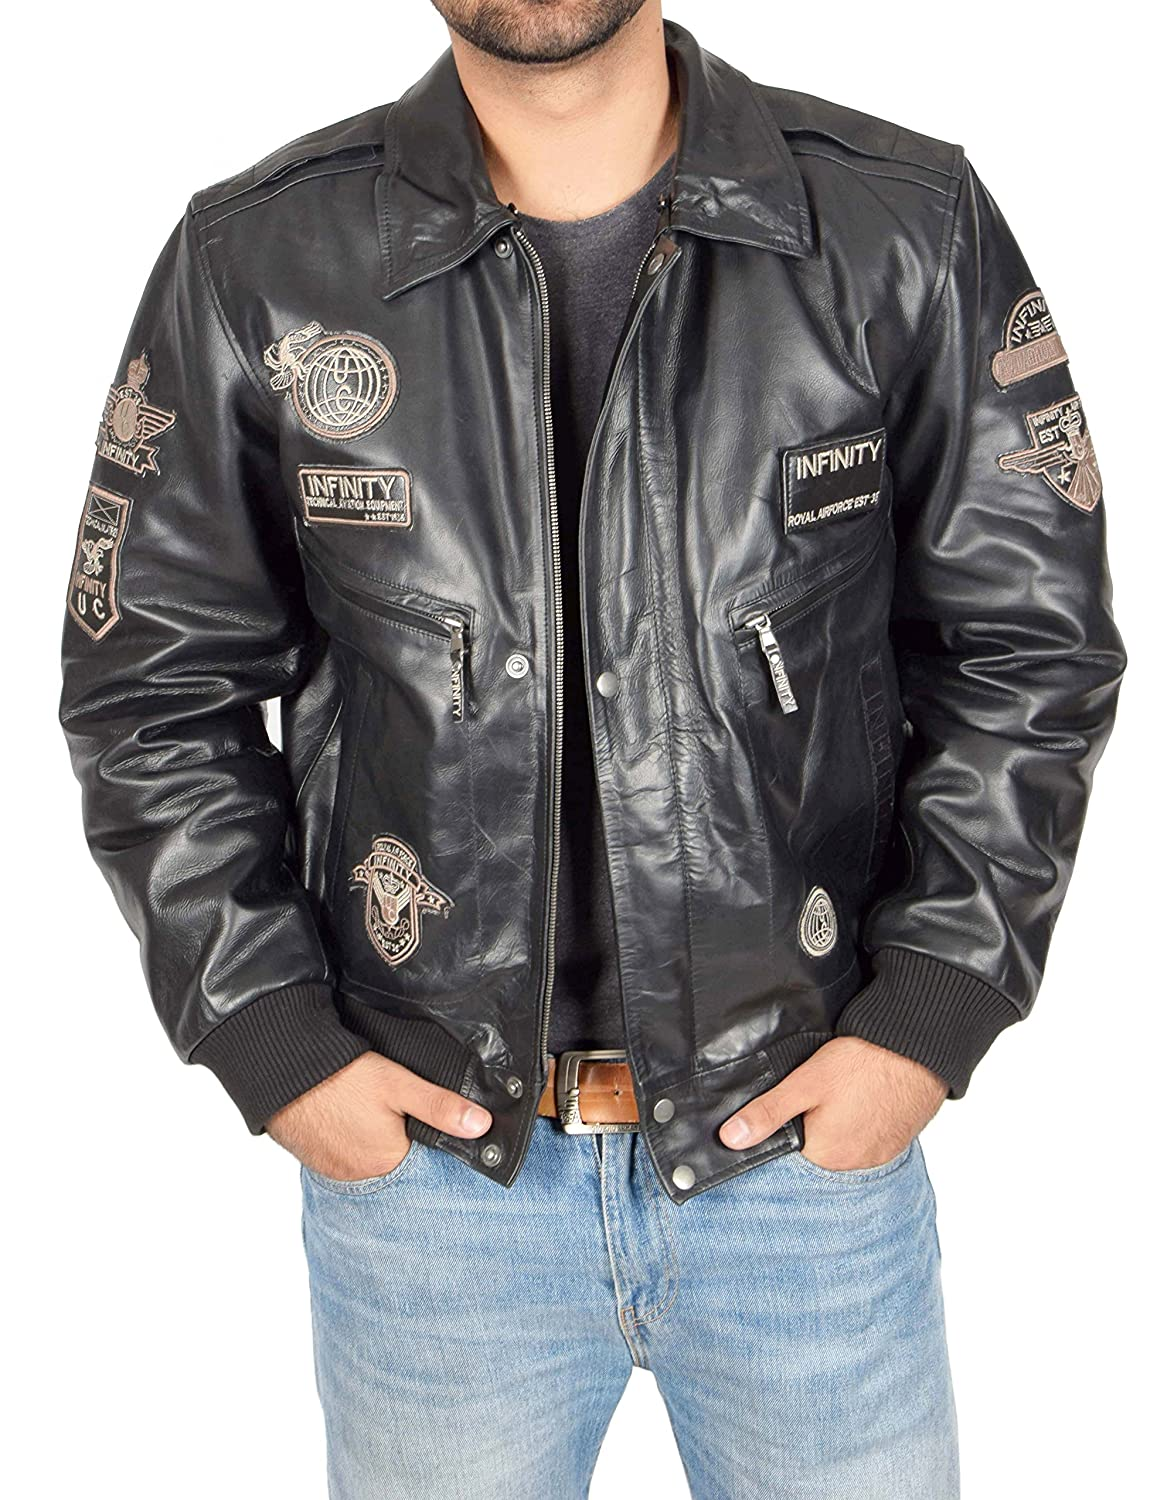 Mens Pilot Leather Jacket BLACK Bomber Aviator With Collar Air Force Badges Luca